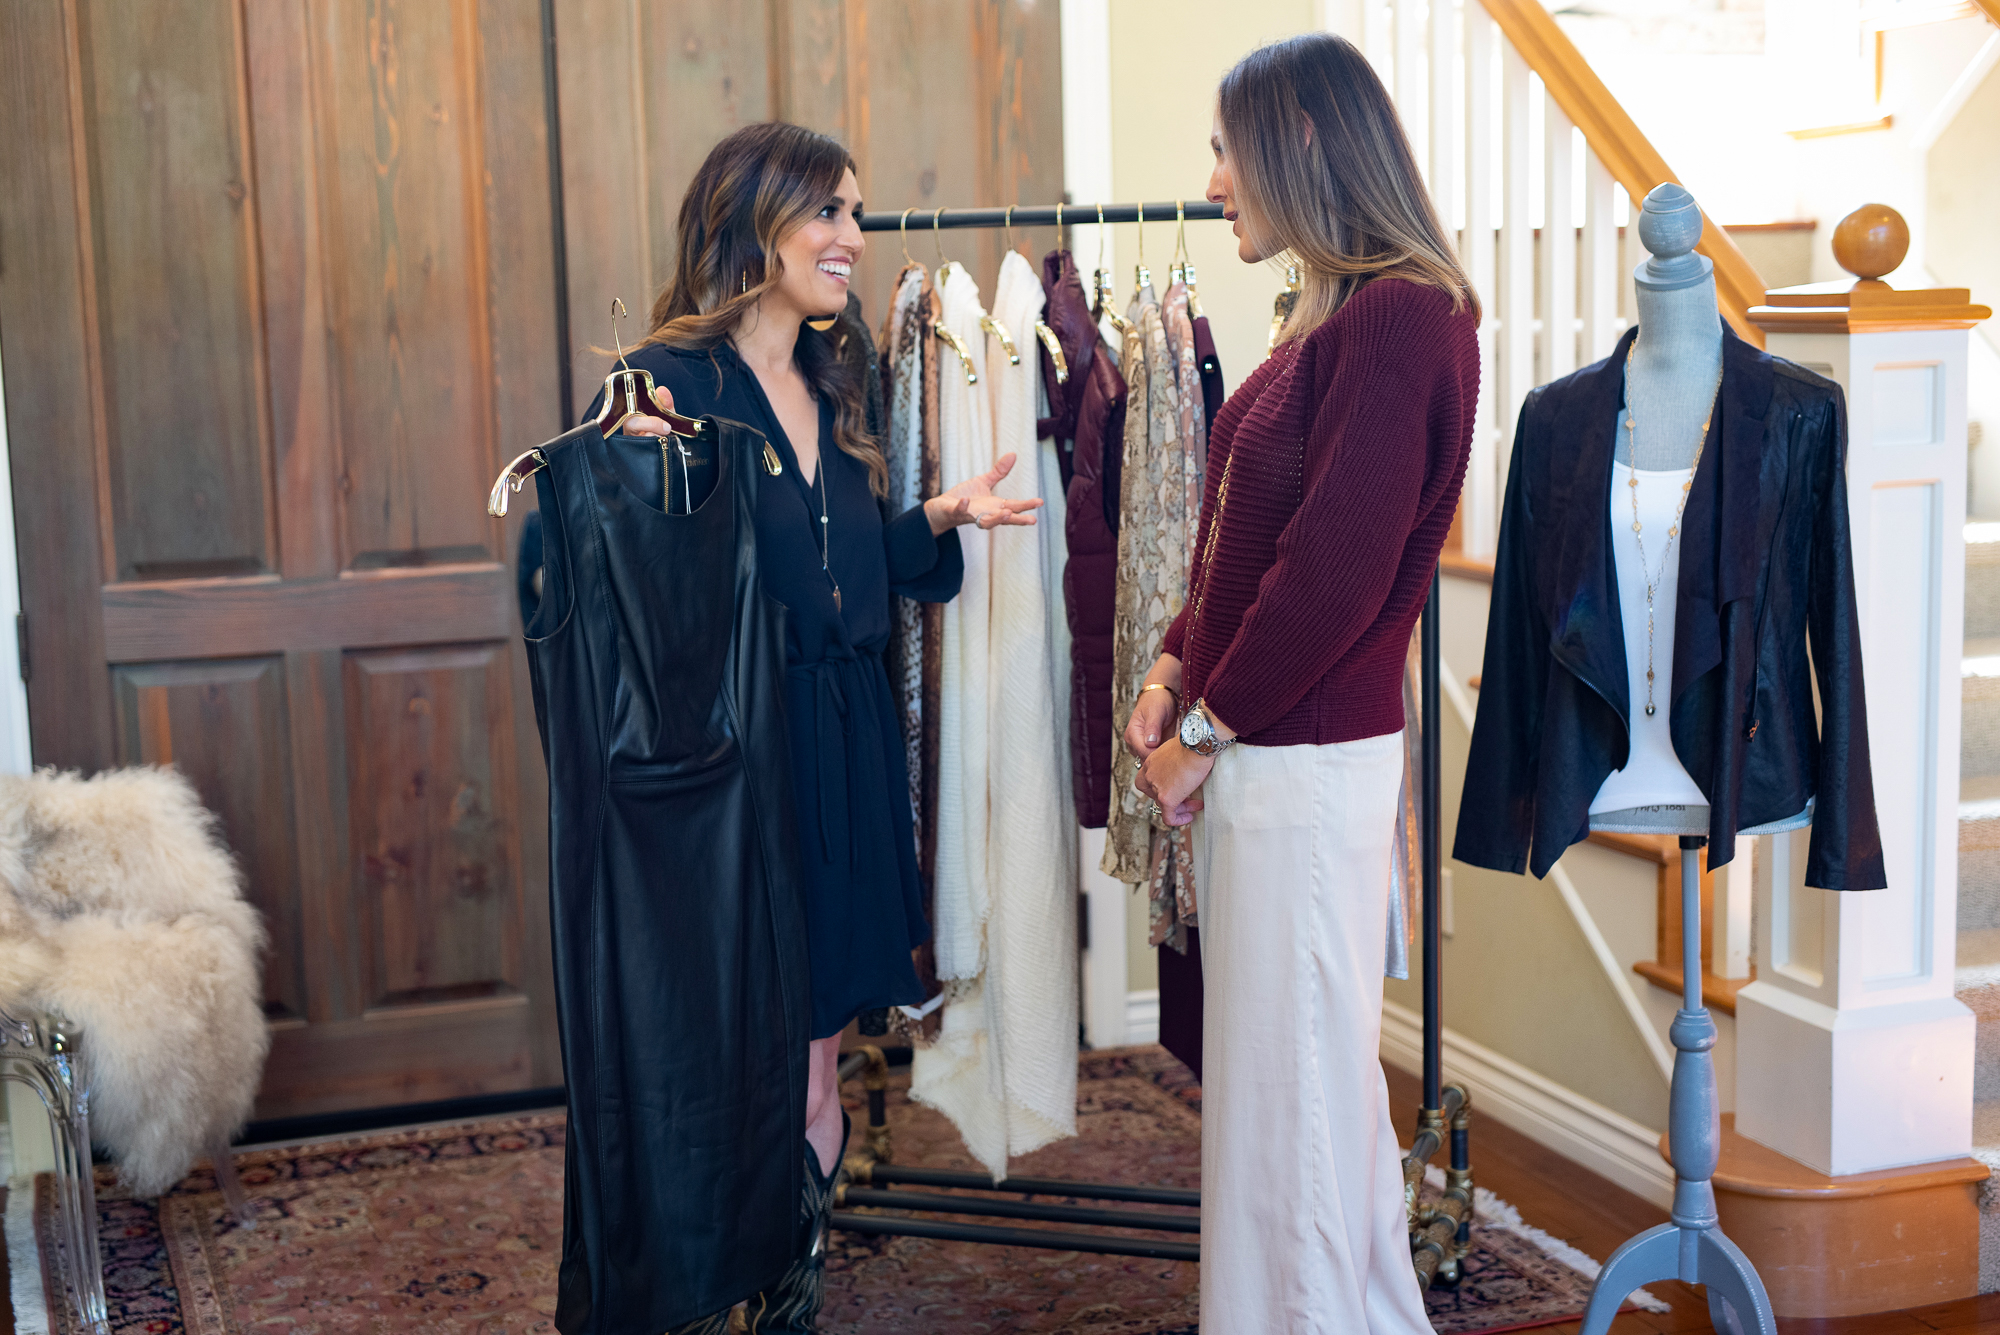 5 wardrobe challenges an image consultant can help with.